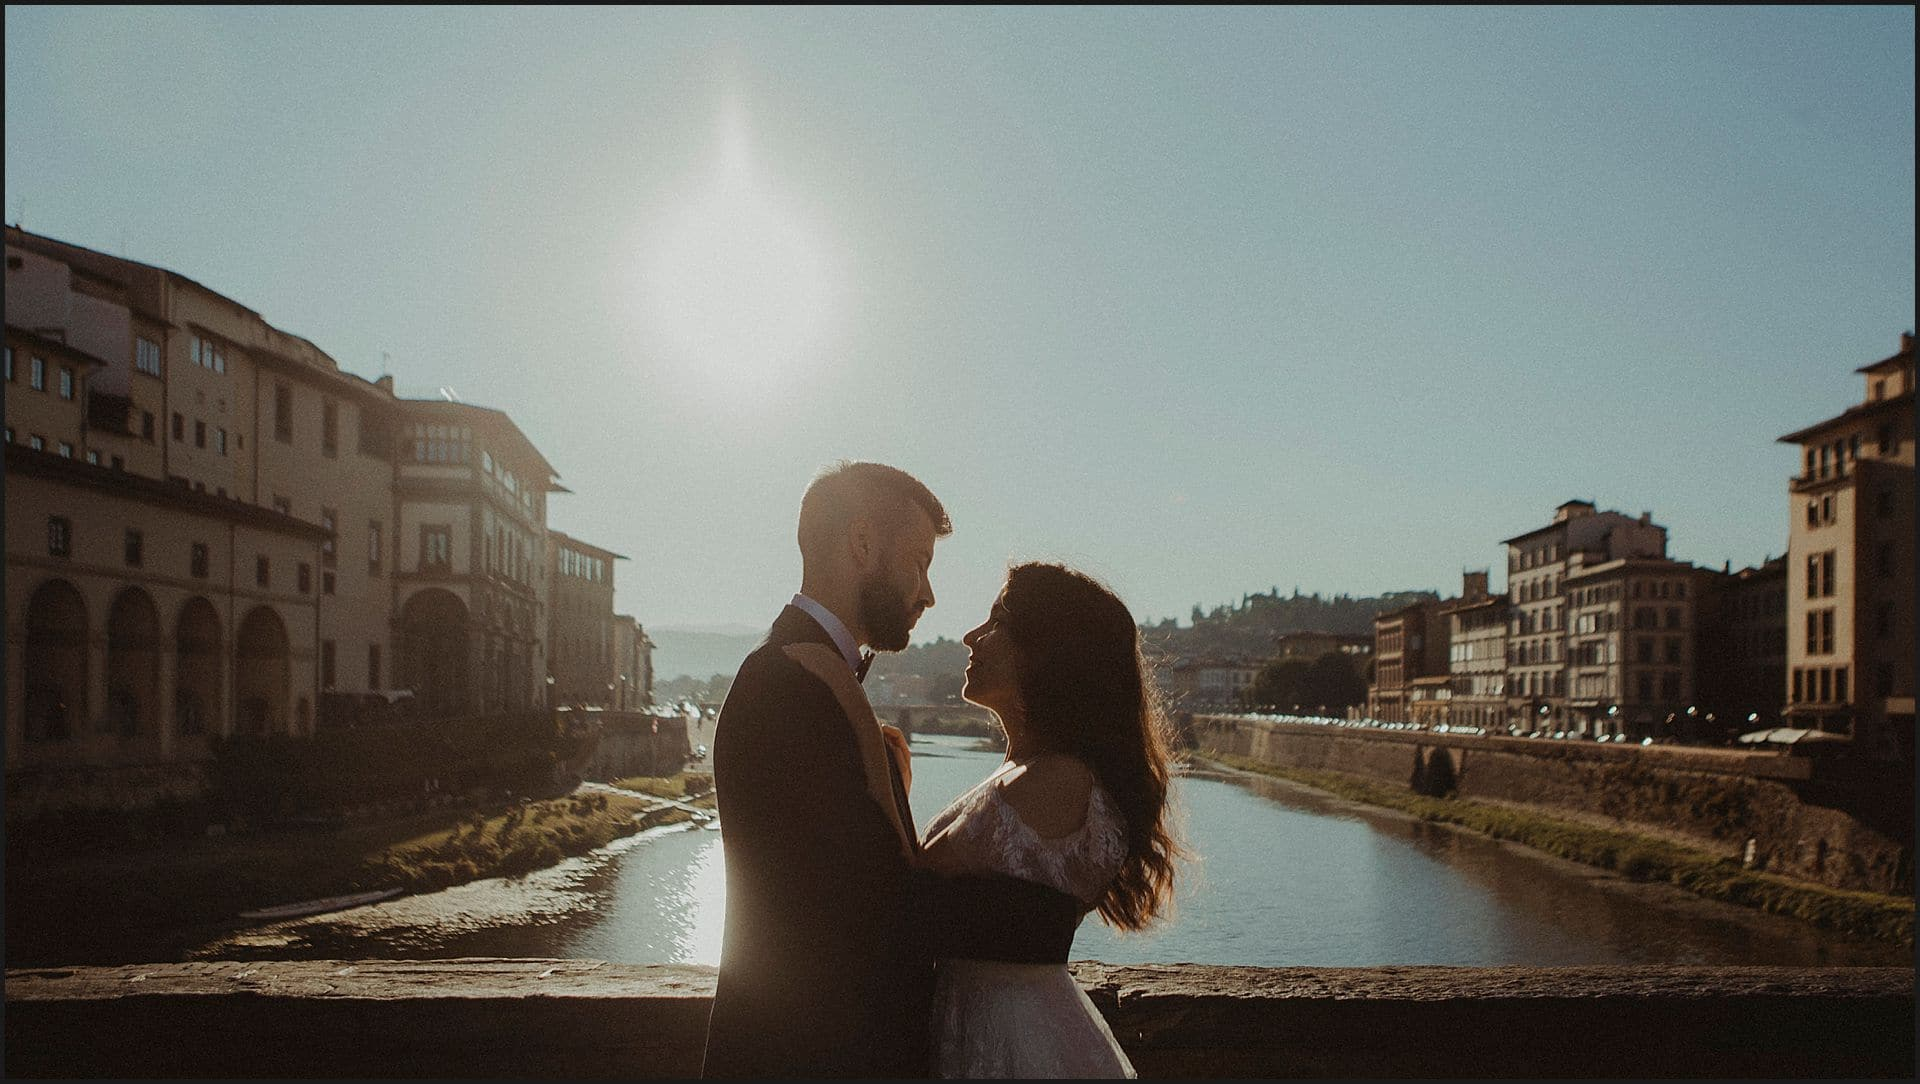 bride and groom, arno river, old bride, florence view, ponte vecchio, sunrise, wedding in italy, destination weddding photographer